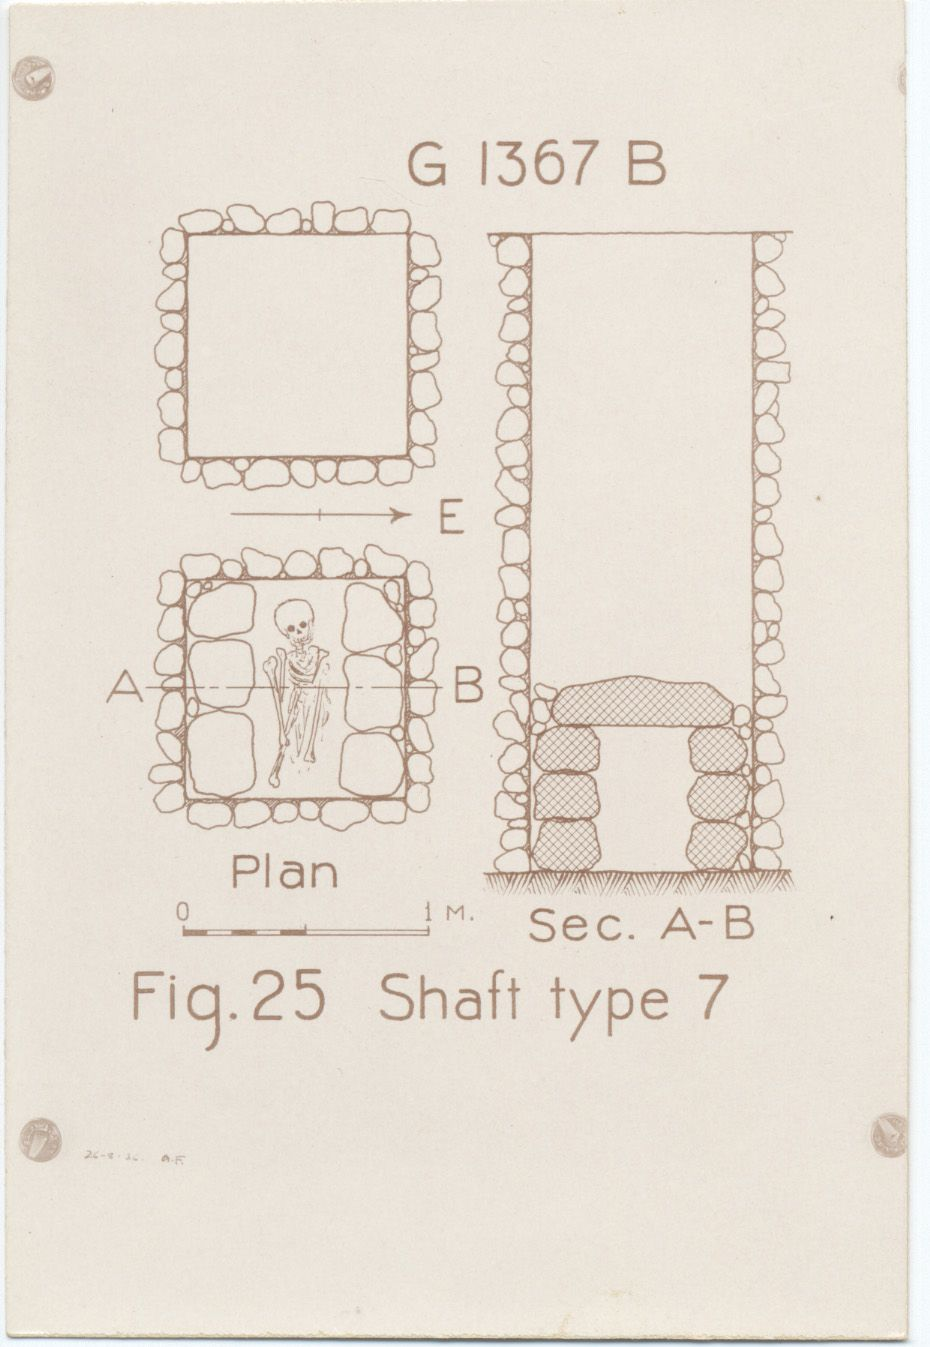 Maps and plans: G 1367, Shaft B